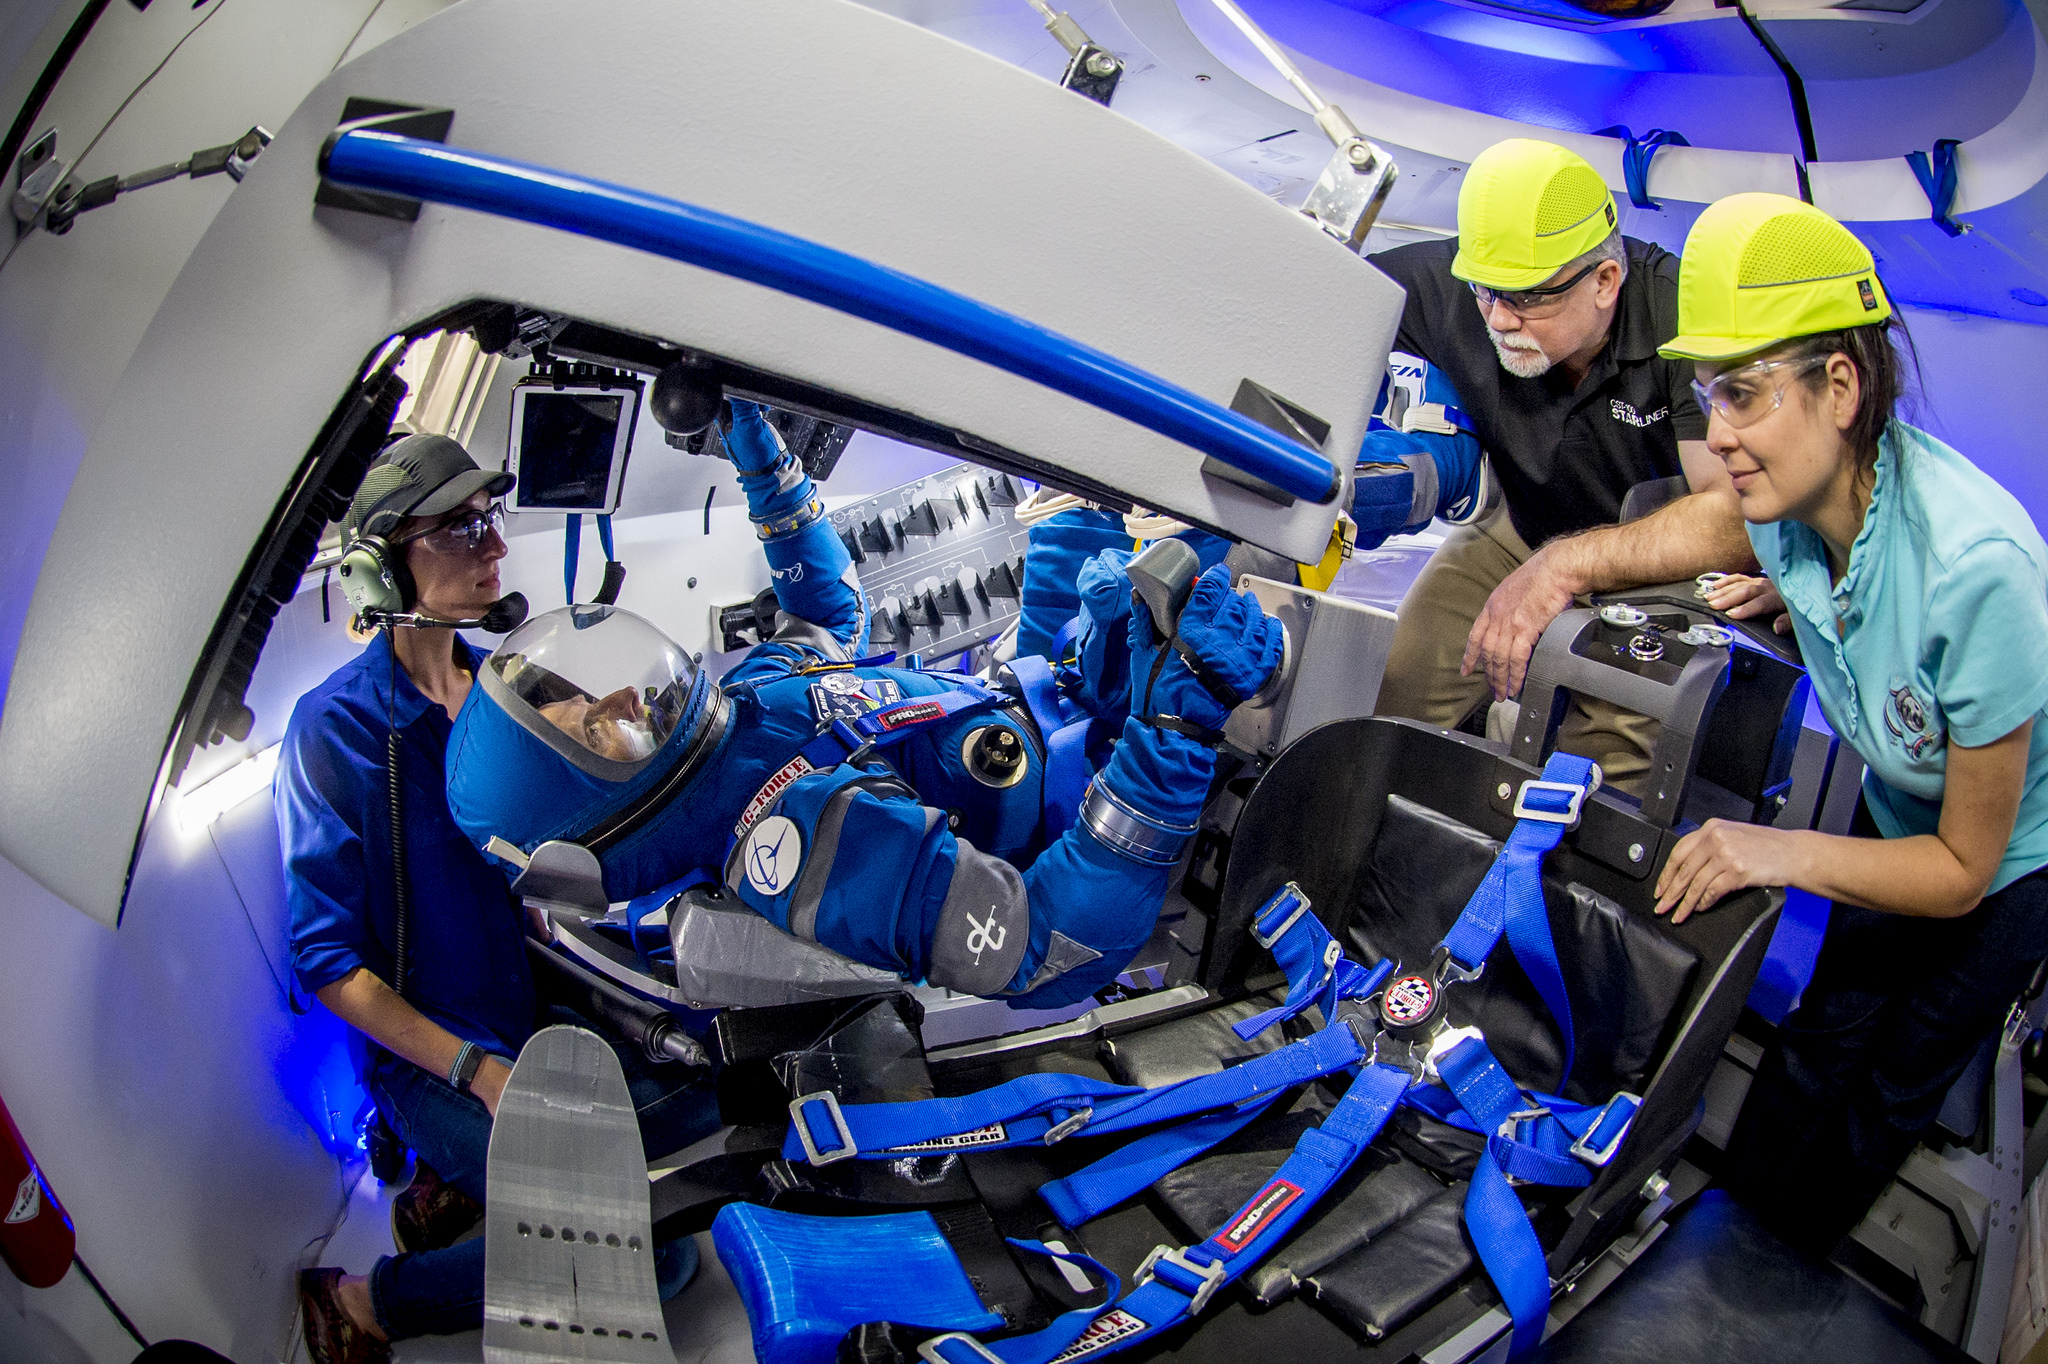 Photos: Meet the 'Boeing Blue' Spacesuit for Starliner Capsule